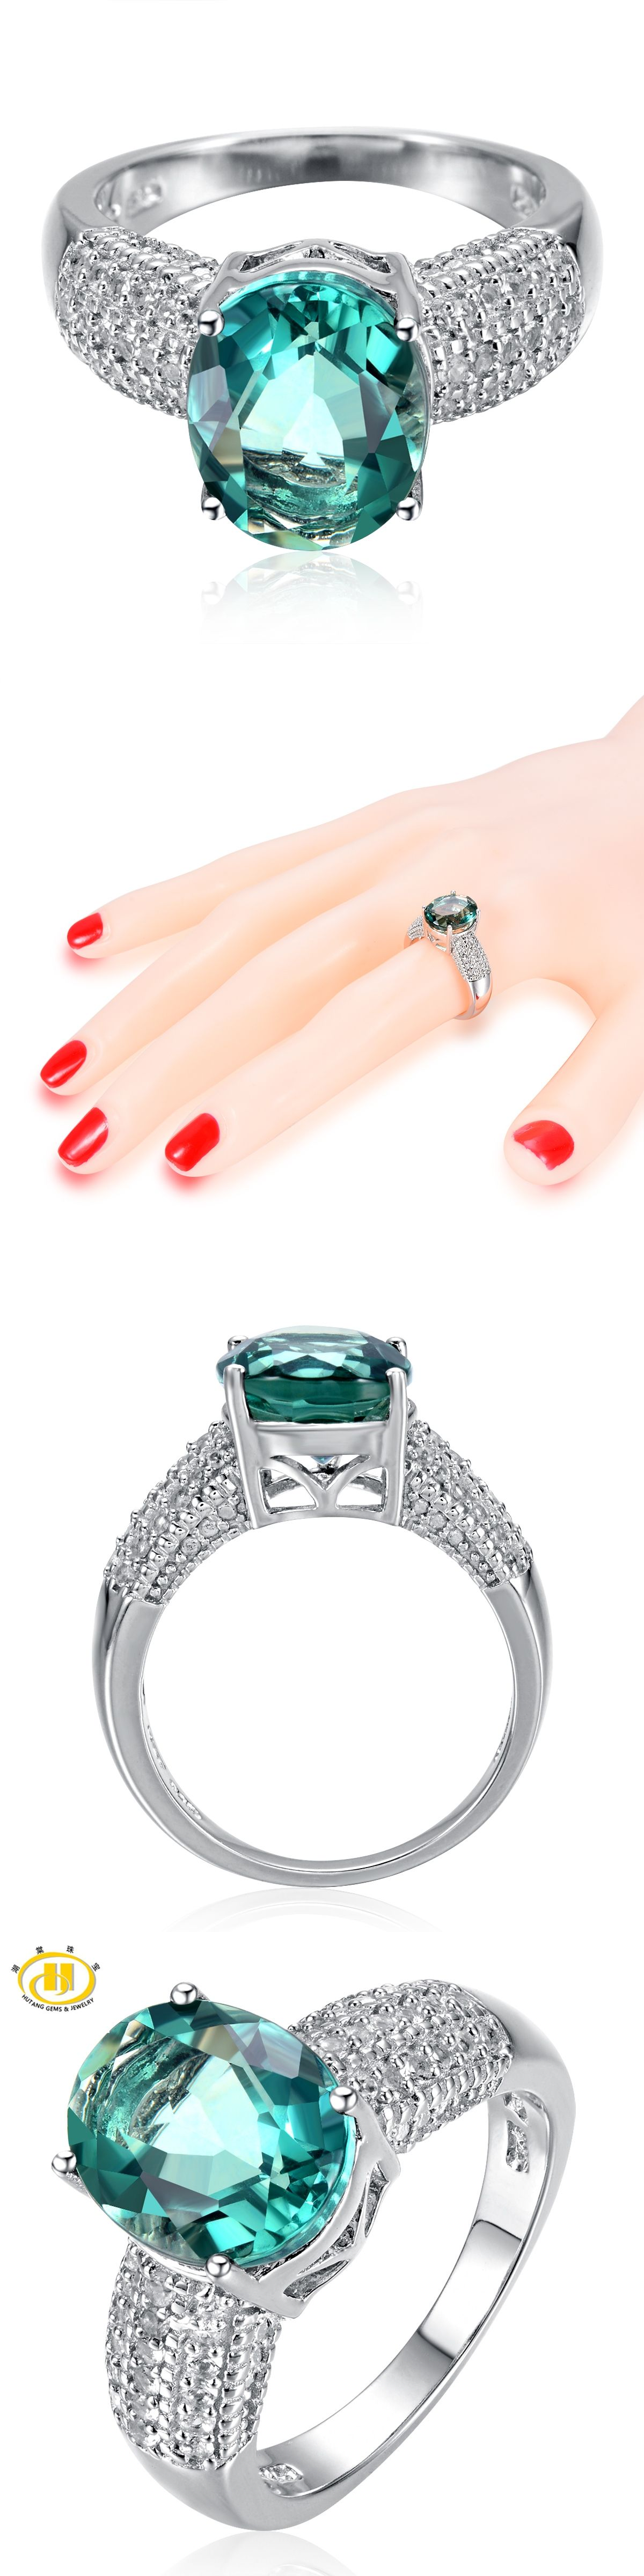 emerald ring img engagement fluorite gemstones find by stone rings and diamond jewellery sapphire